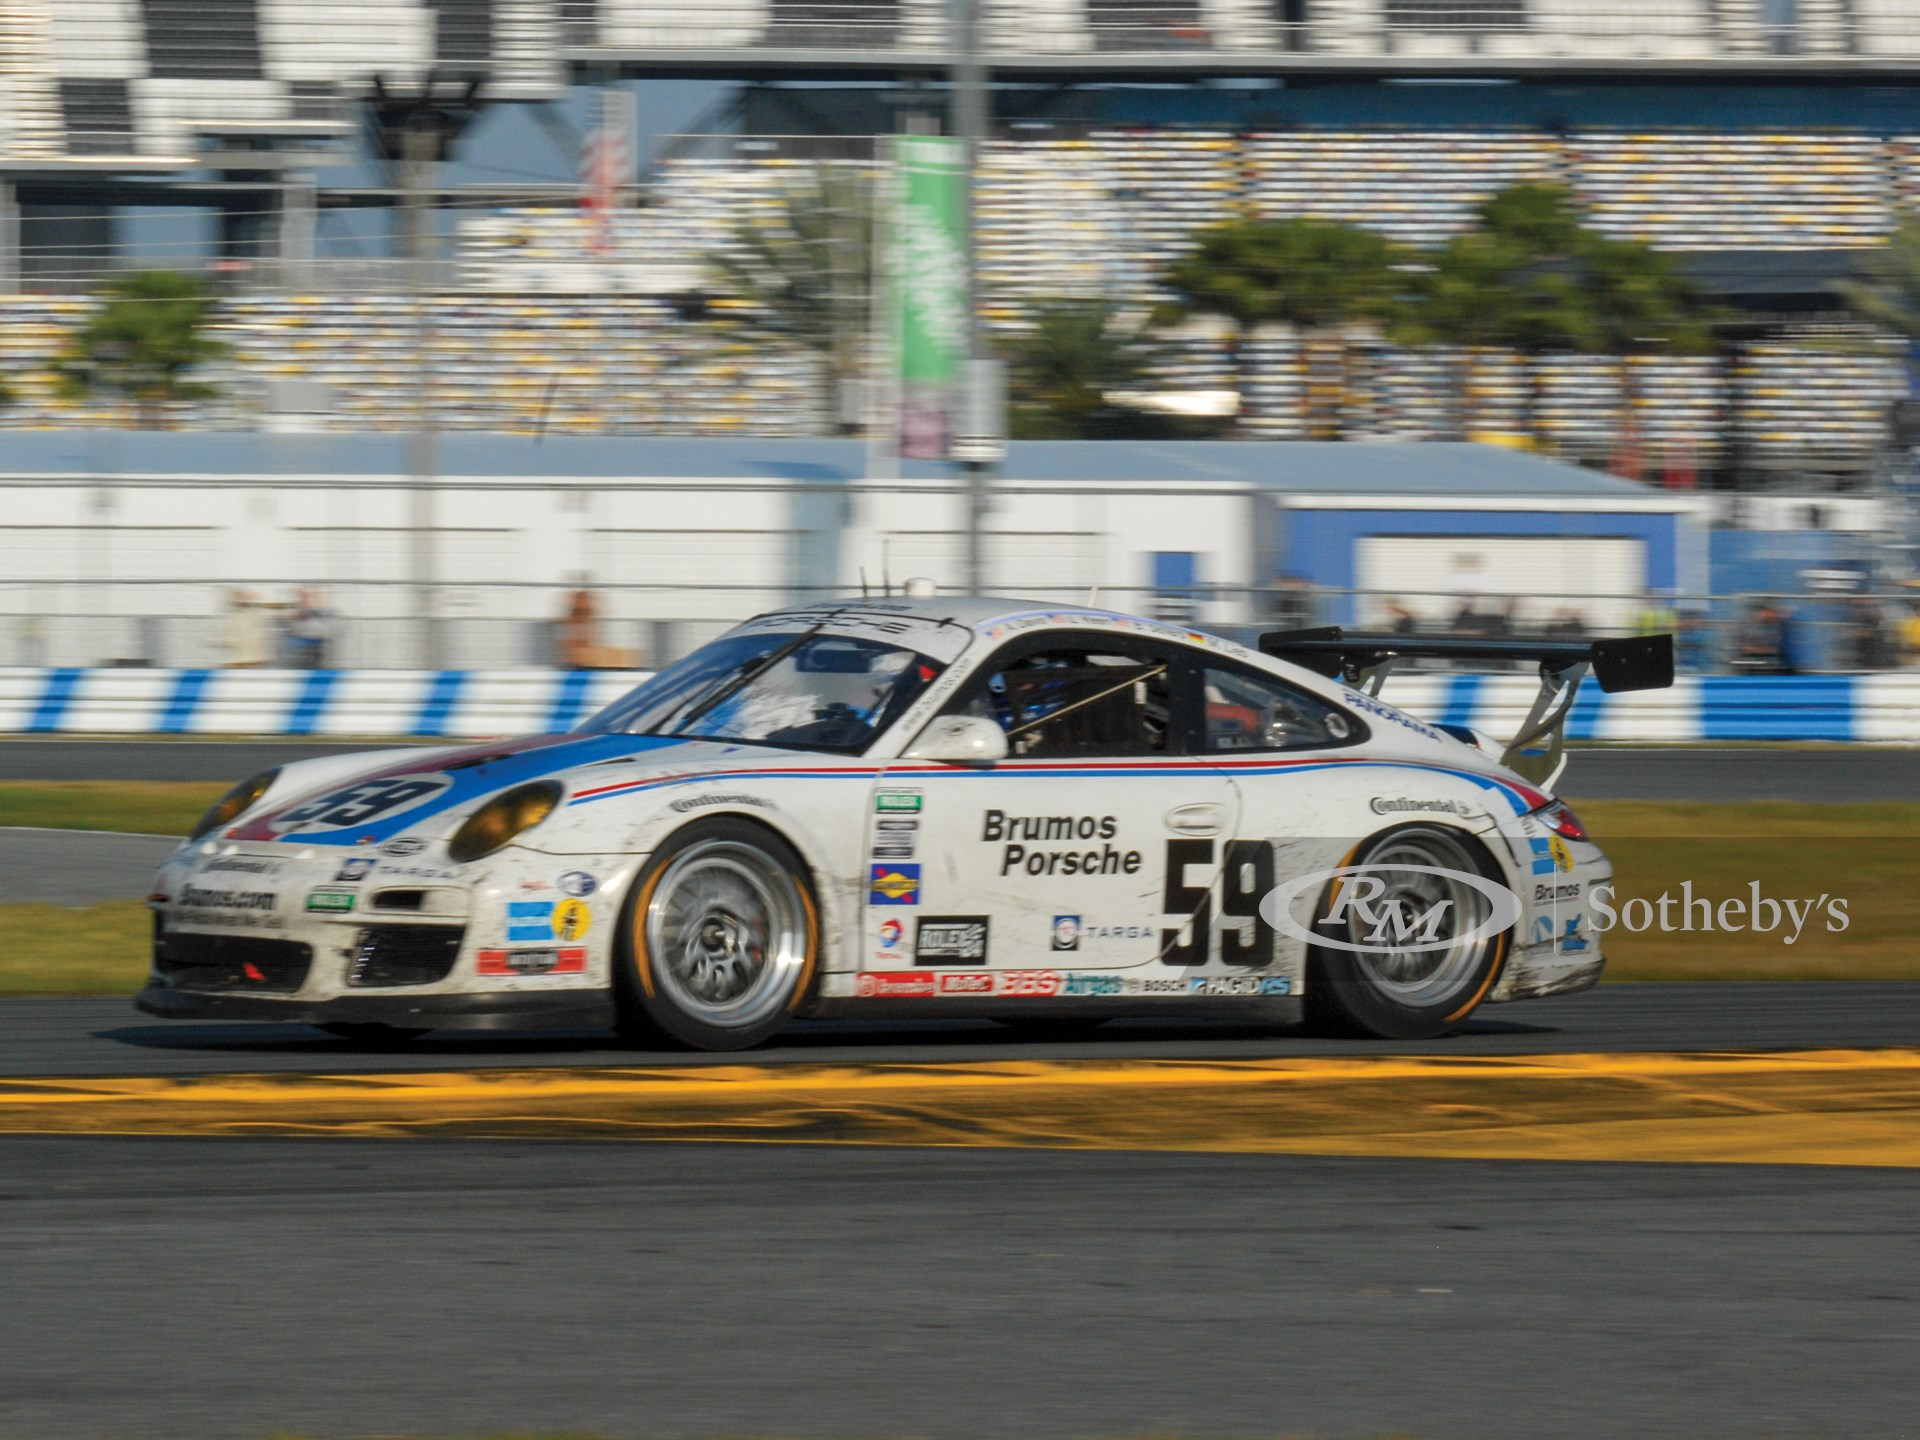 2019 Rolex 24 at Daytona with Hurley Haywood -